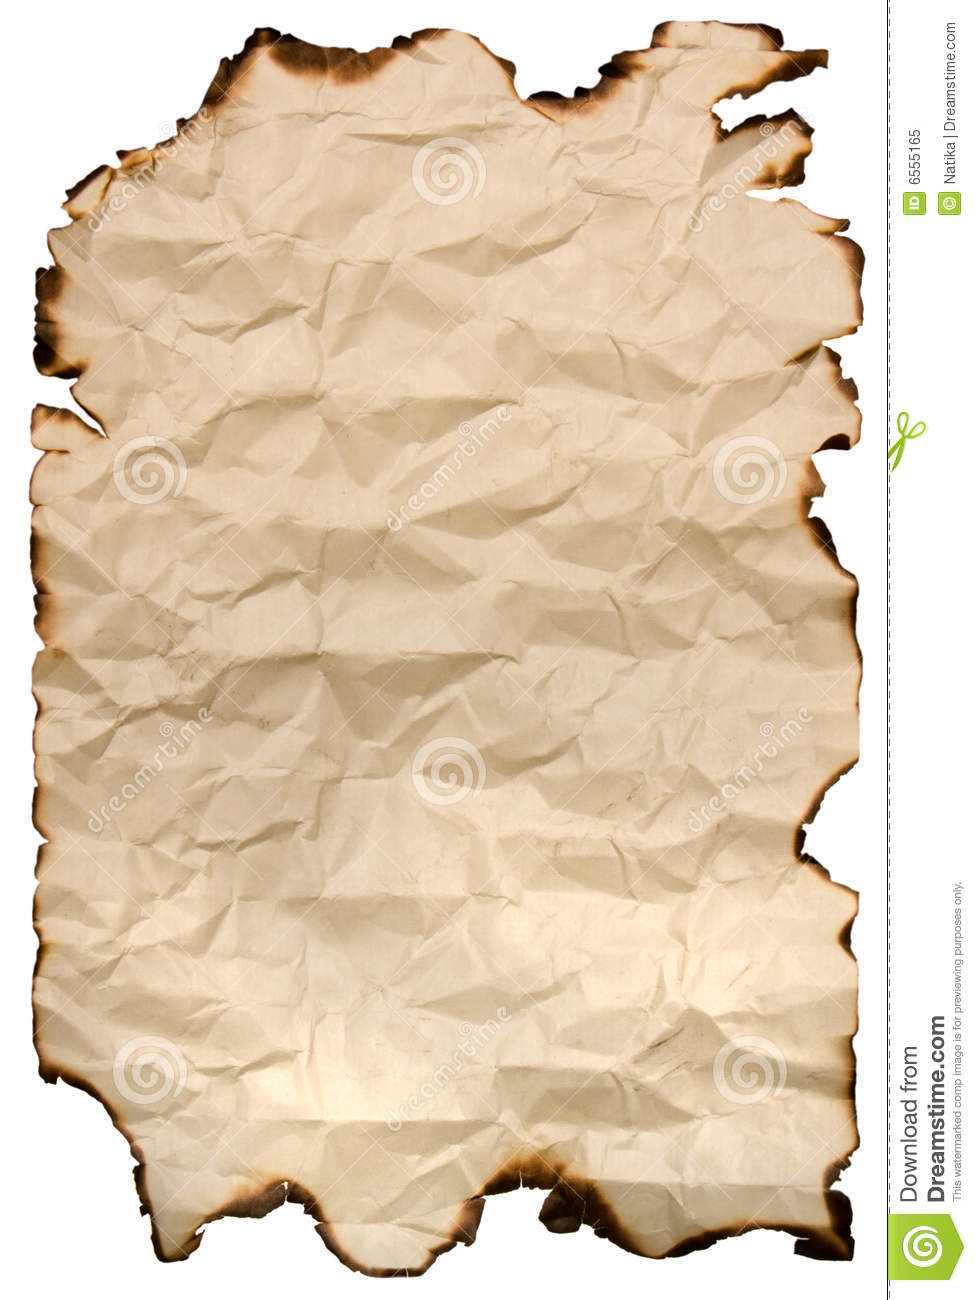 burnt paper royalty free stock photo image 6555165 policeman clipart black and white police clipart